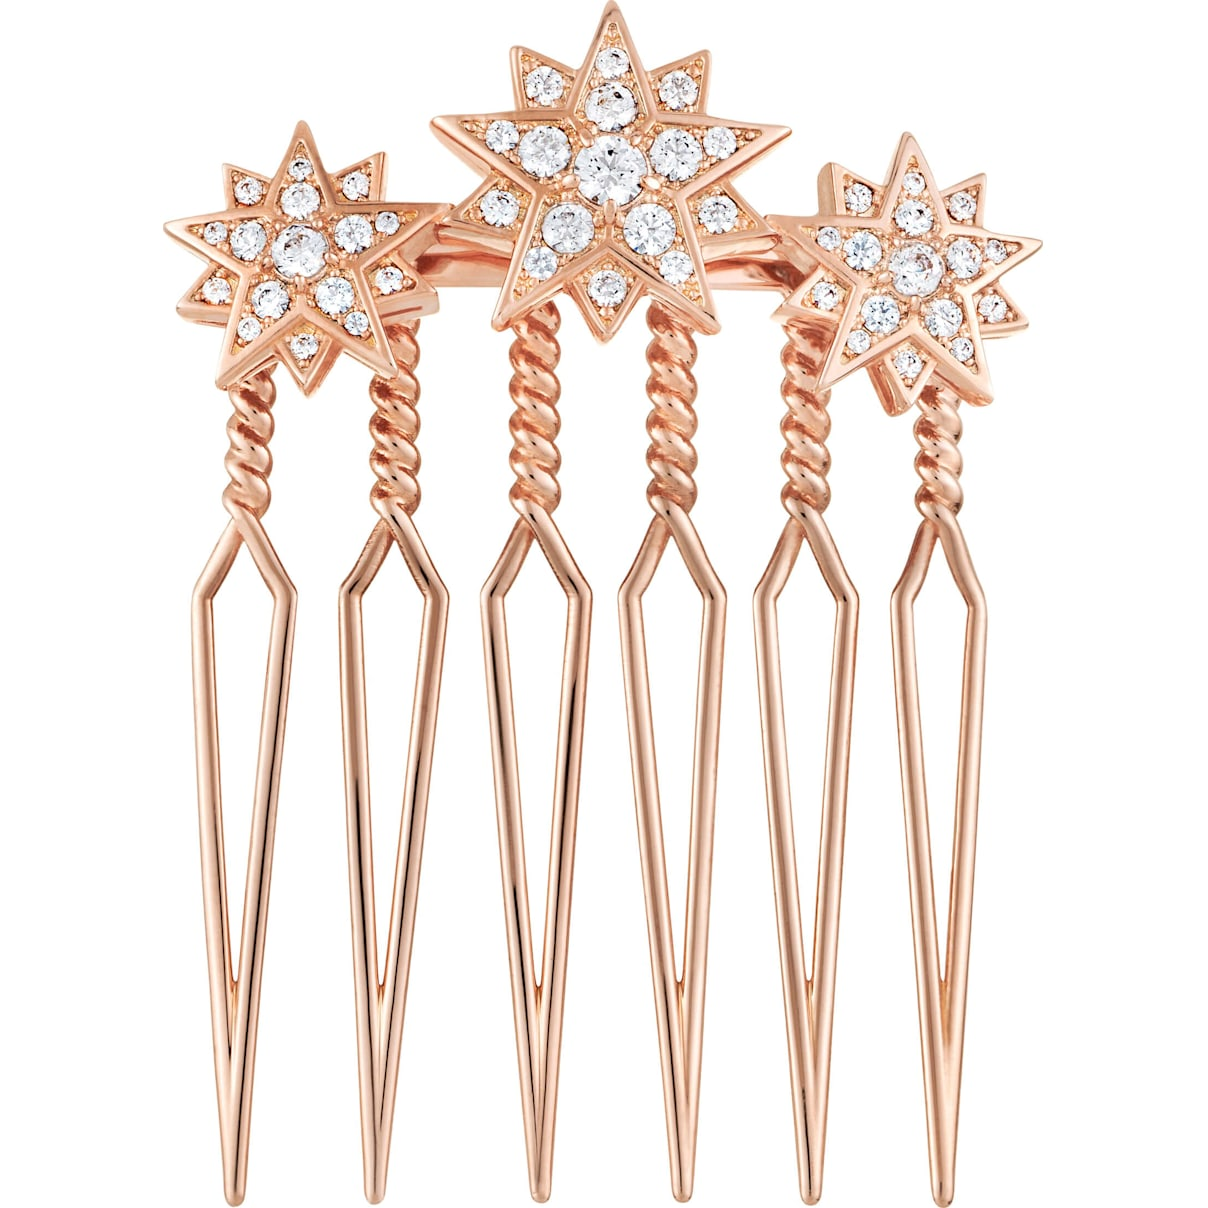 Swarovski Penélope Cruz Moonsun Limited Edition Hair Pin, White, Rose gold plating